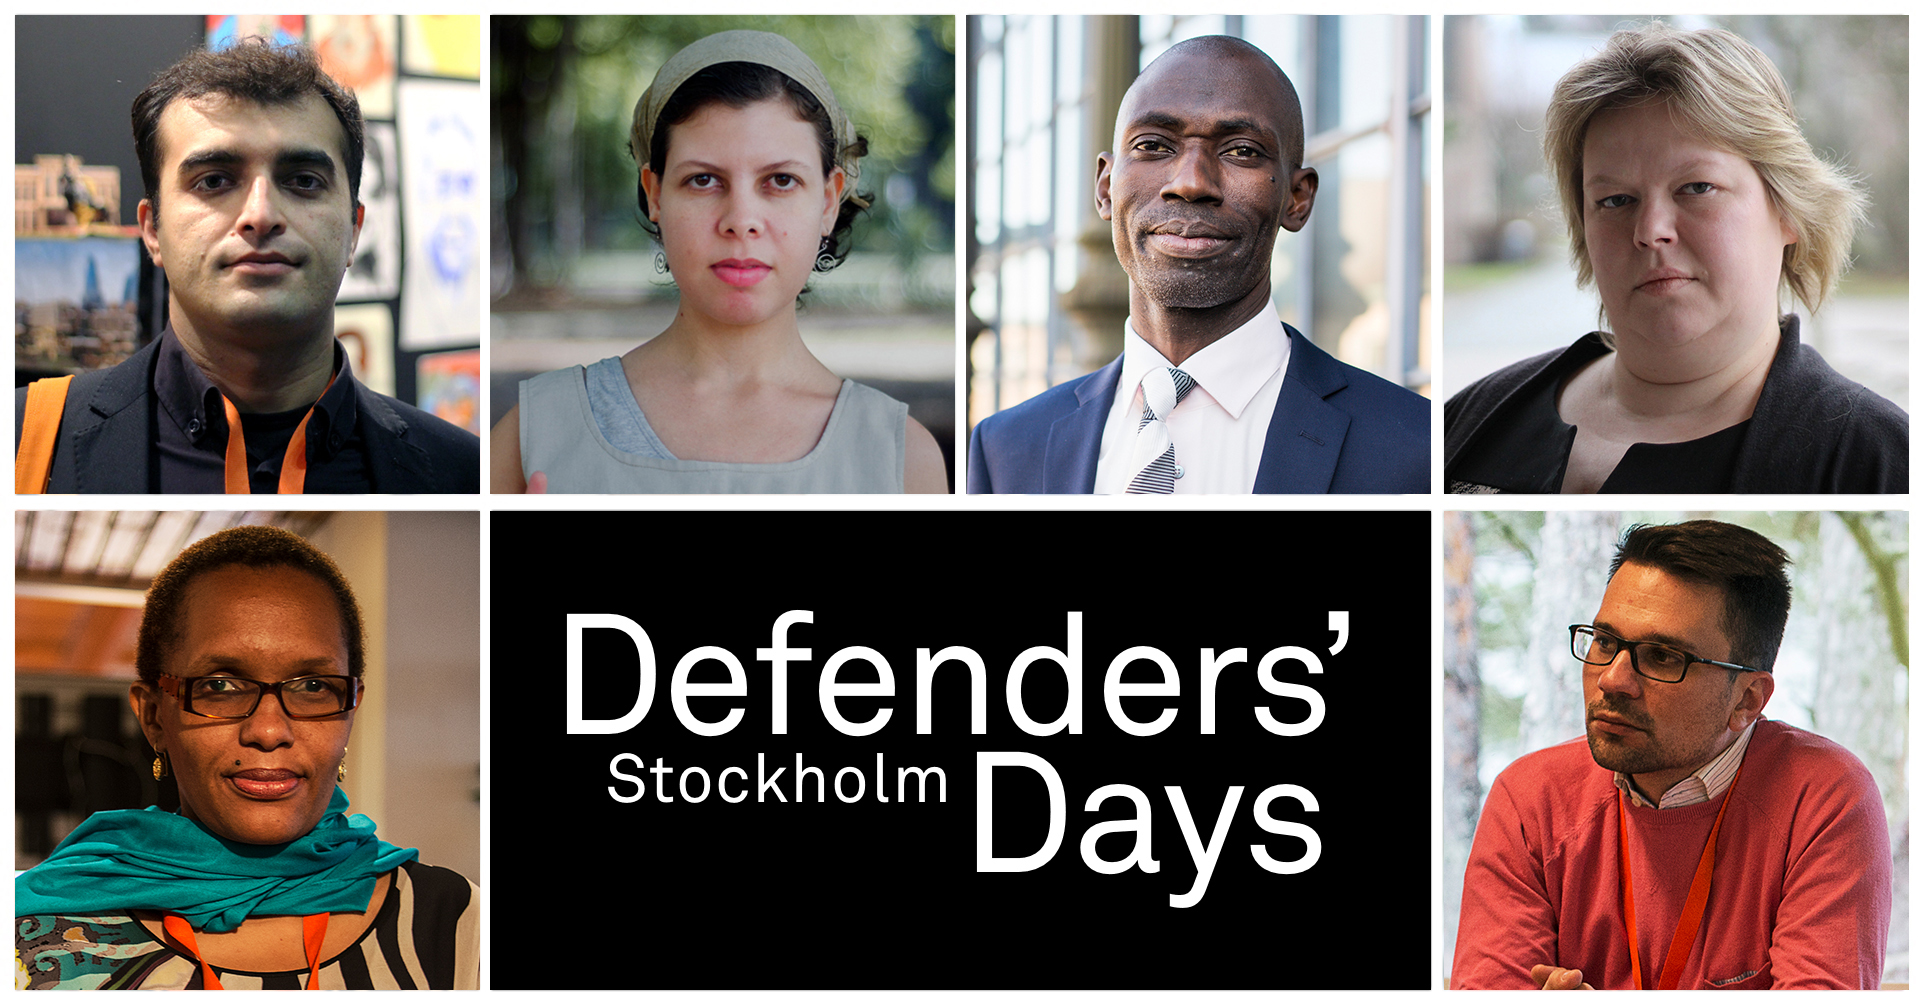 Defenders' Days is a conference for and with human rights defenders.